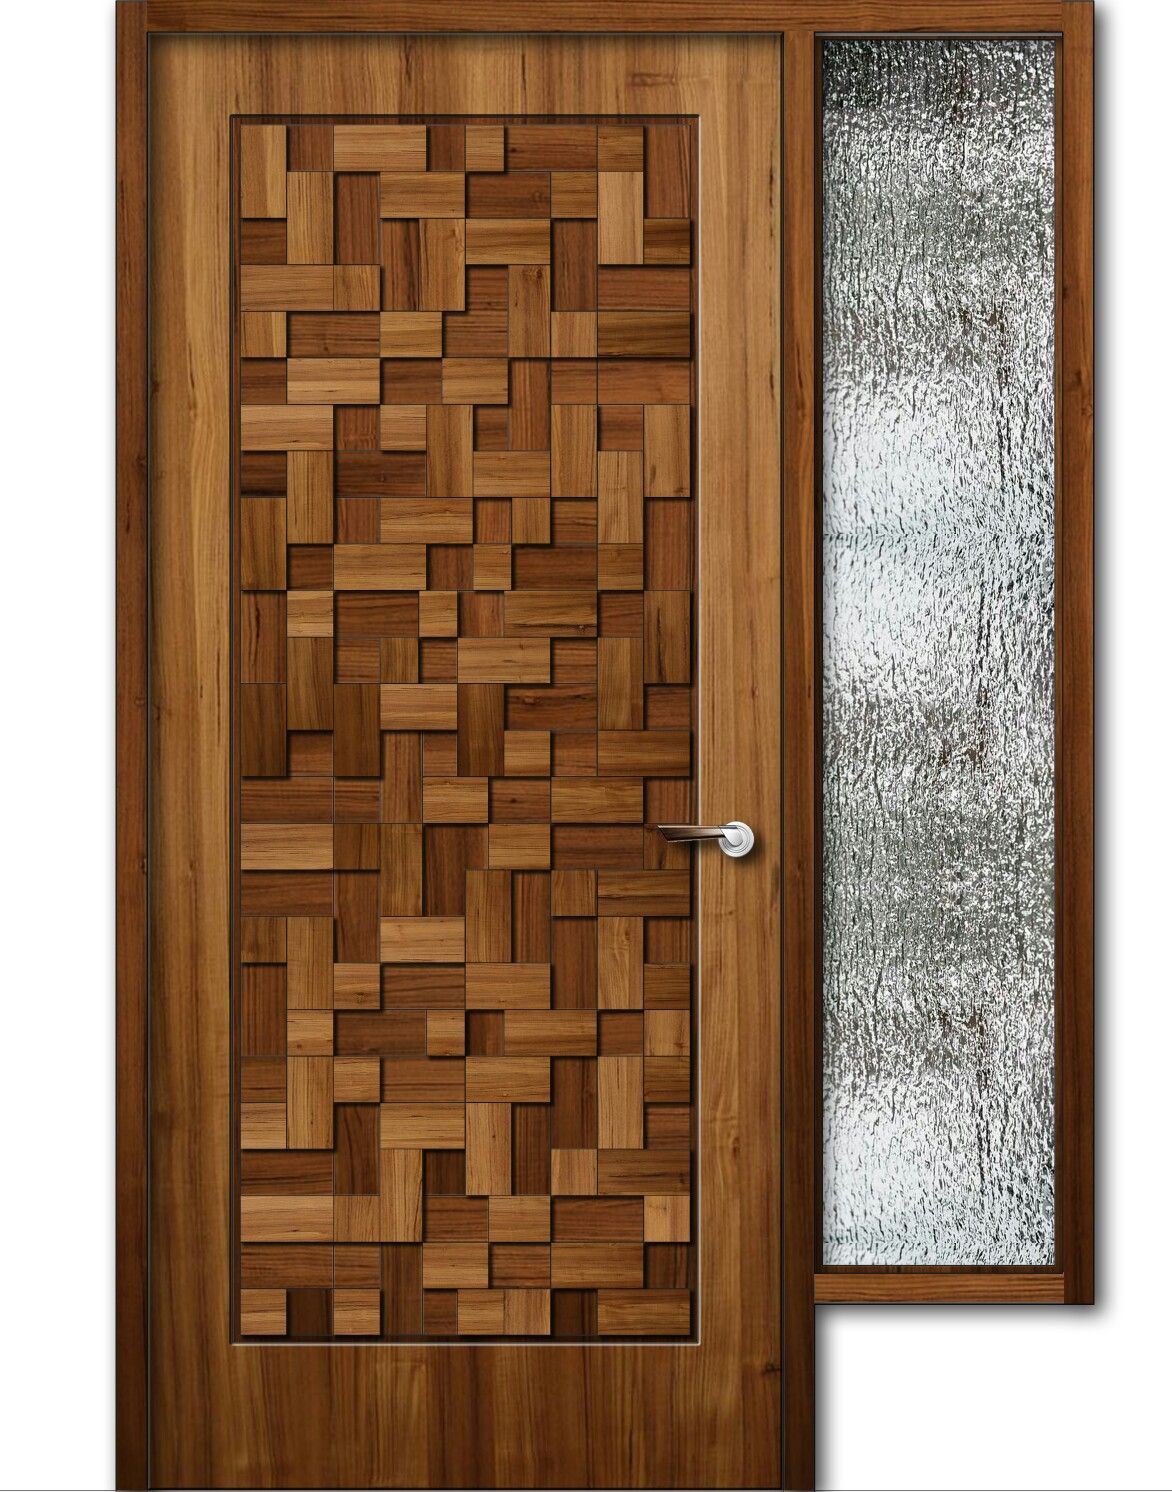 Teak wood finish wooden door with window 8feet height for Modern main door design